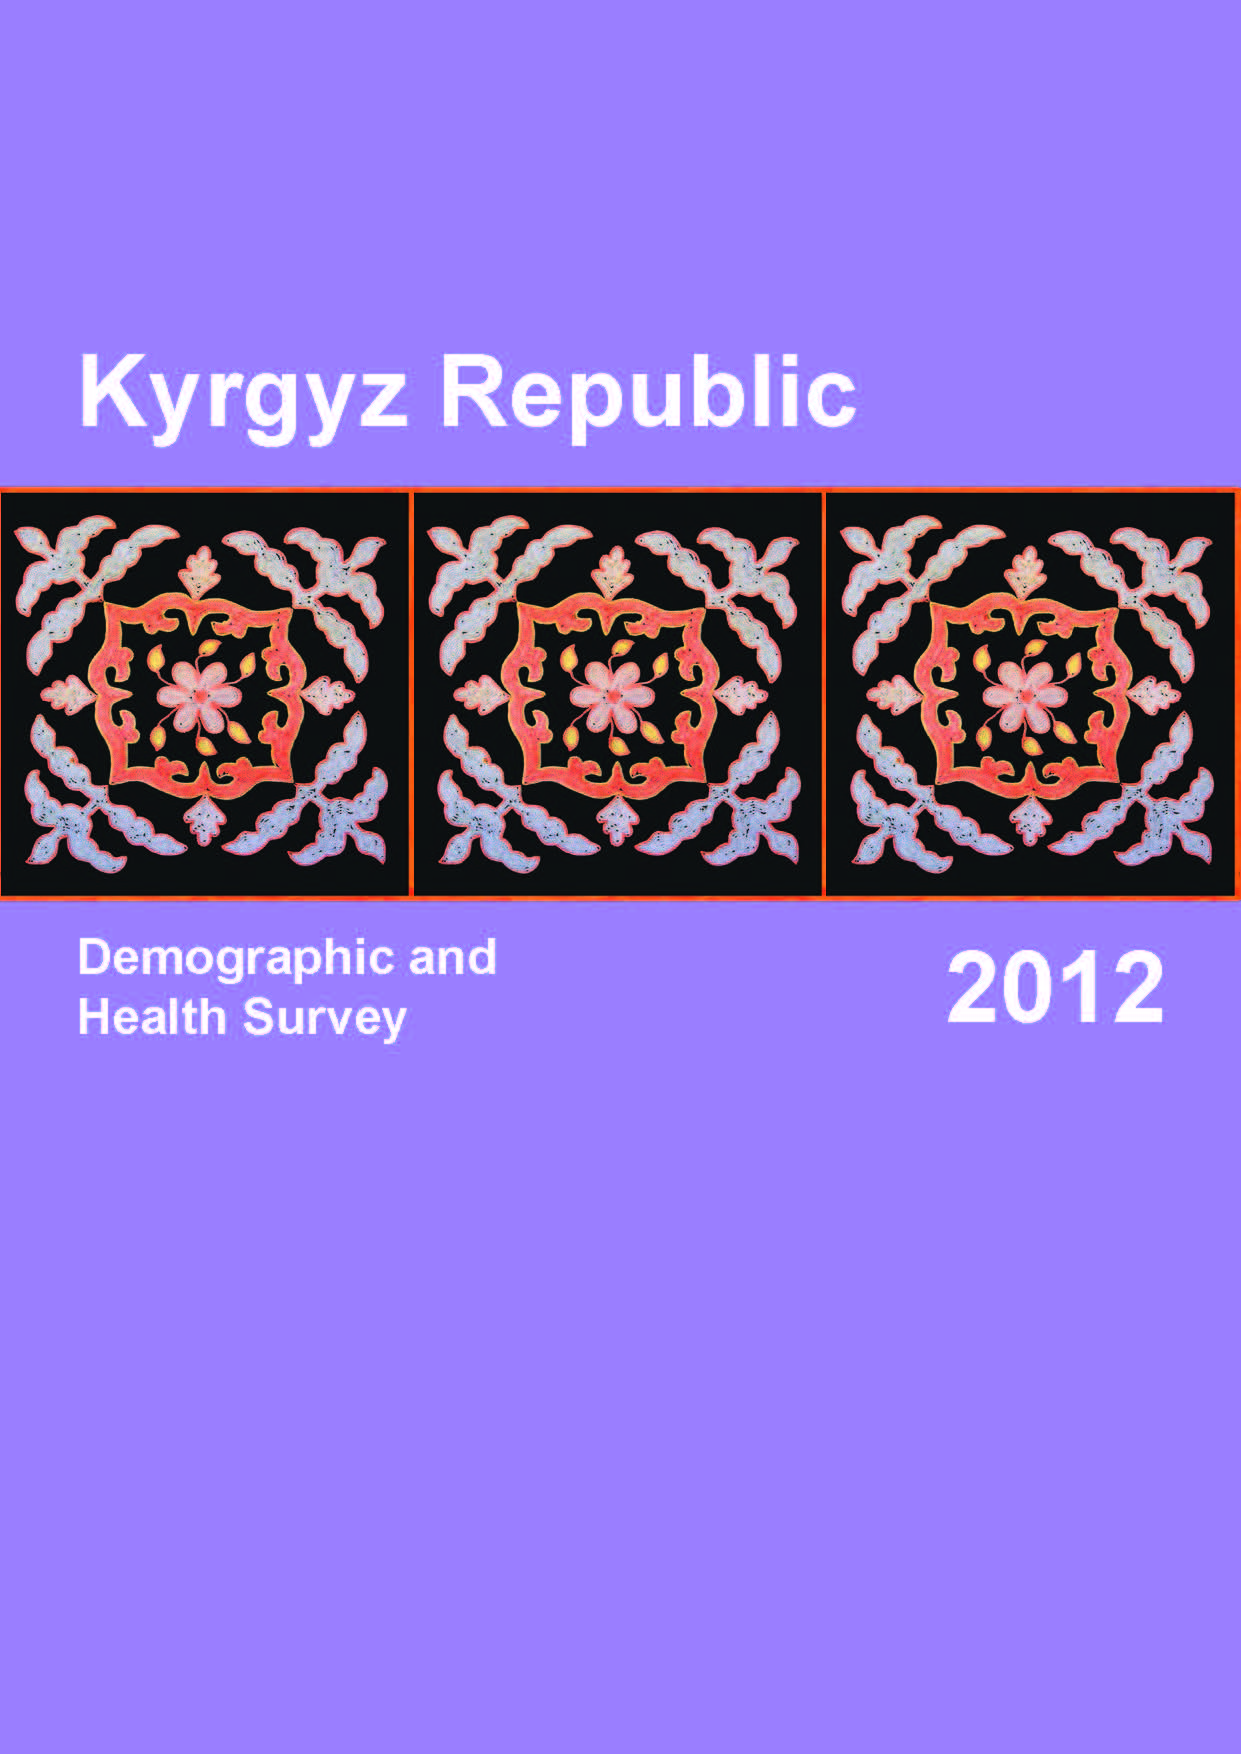 Kyrgyz Republic Demographic Health Survey (DHS) Final Report 2012